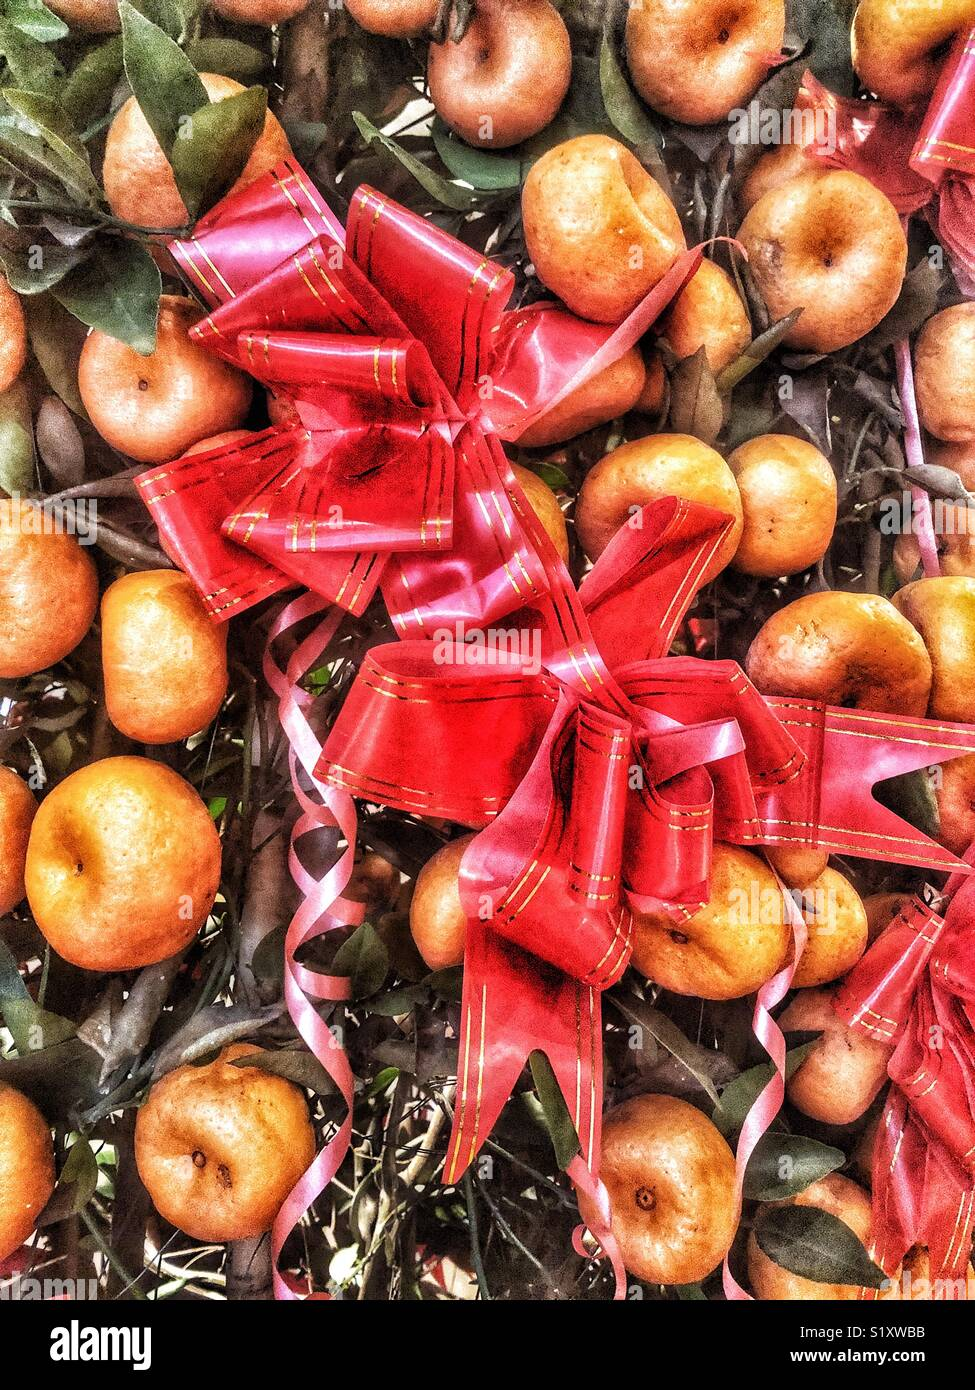 Red bows and citrus fruit for the Chinese New Year - Stock Image